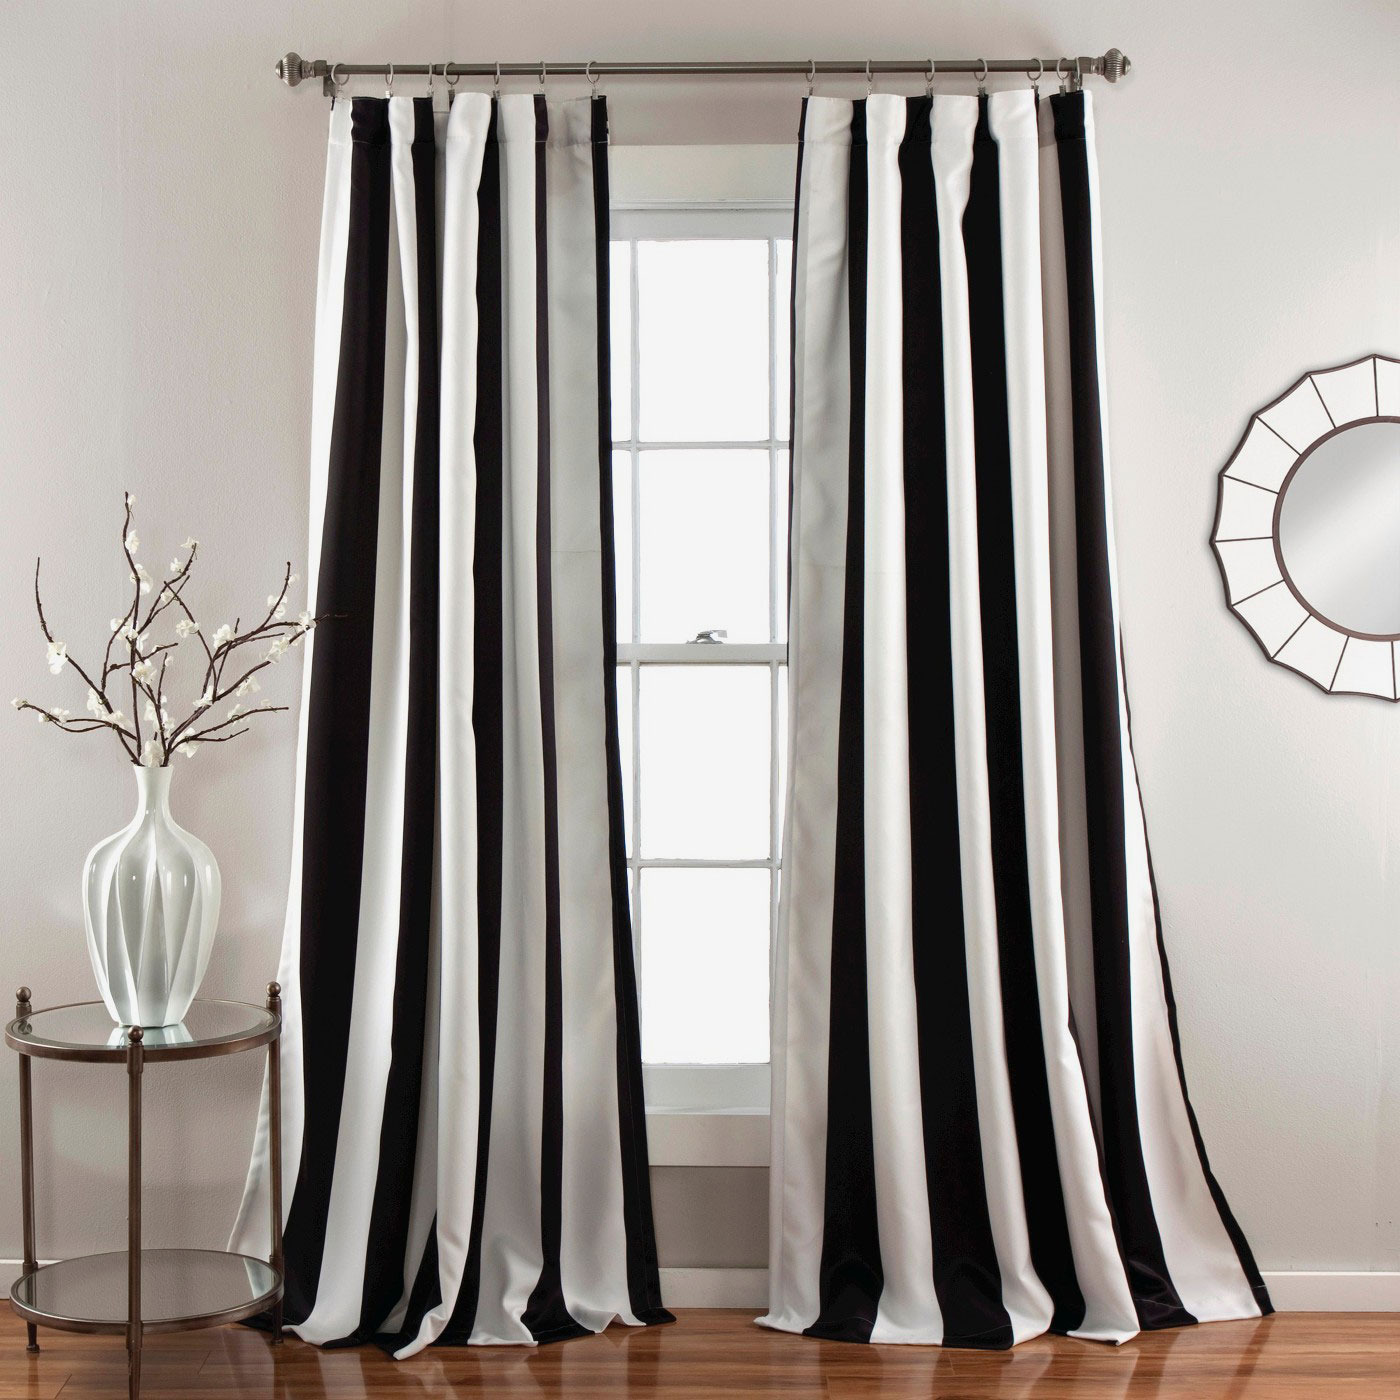 Window Coverings To Keep Heat Out Wilbur Room Darkening Curtain Panels